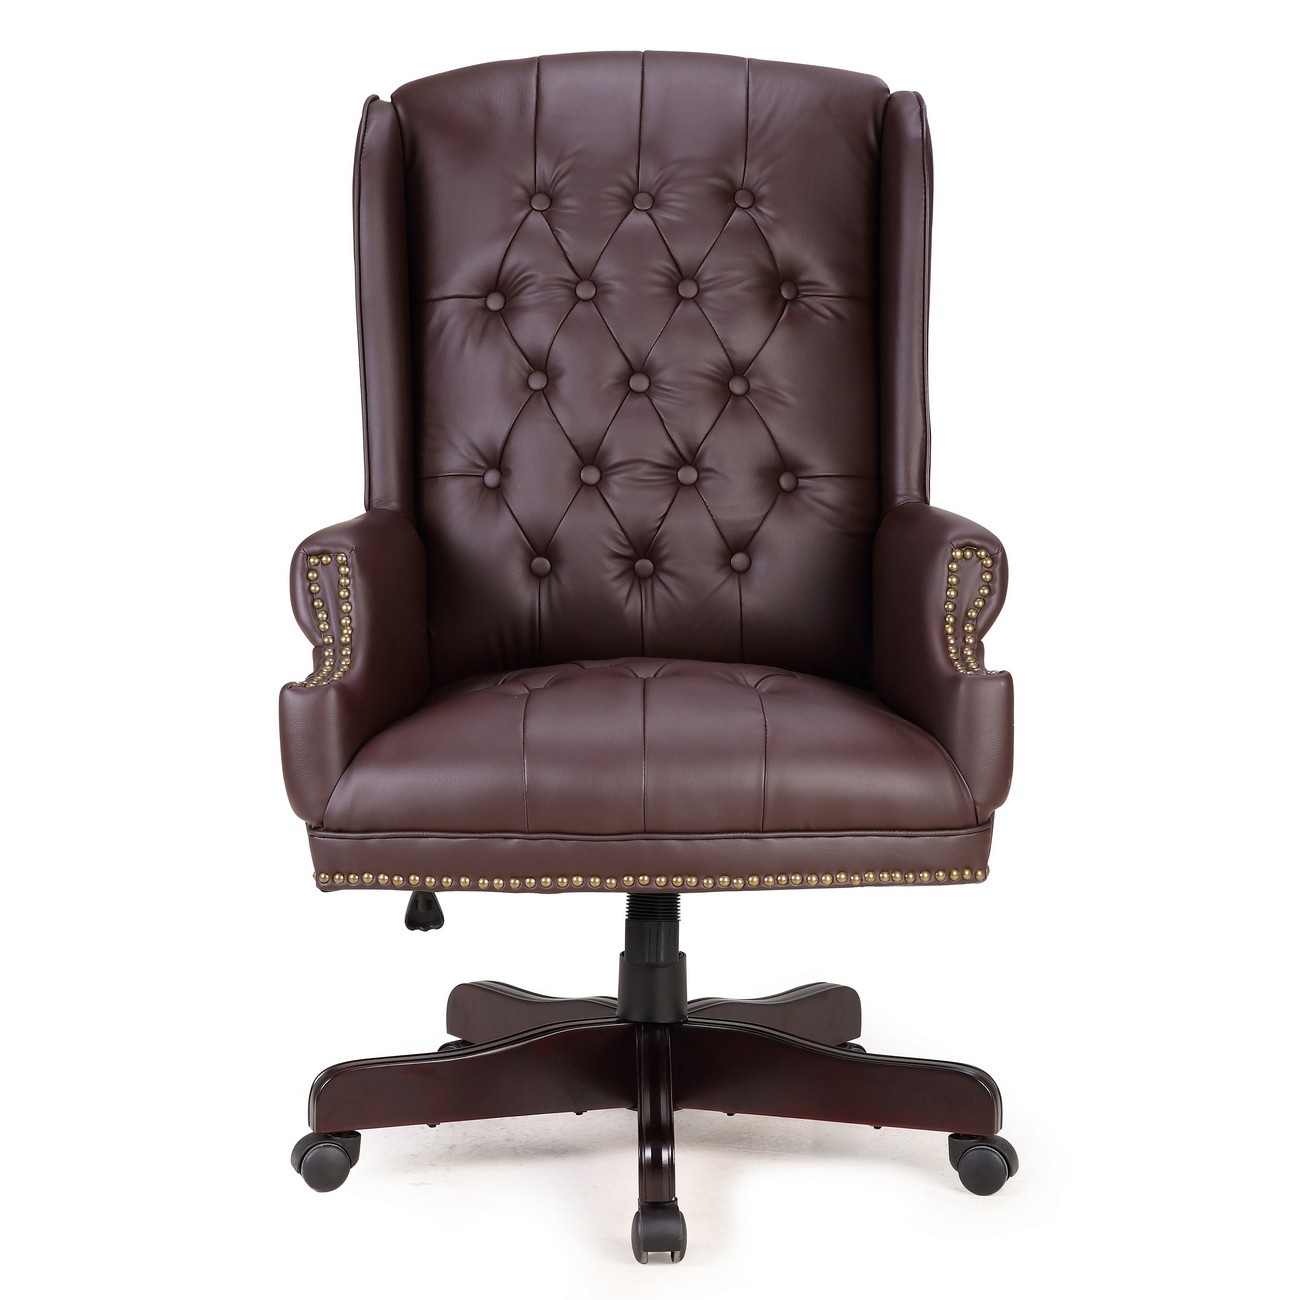 Admirable Belleze Traditional Executive Wingback Office Desk Chair Button Tufted Styling With Faux Leather Wood Base Brown Pabps2019 Chair Design Images Pabps2019Com